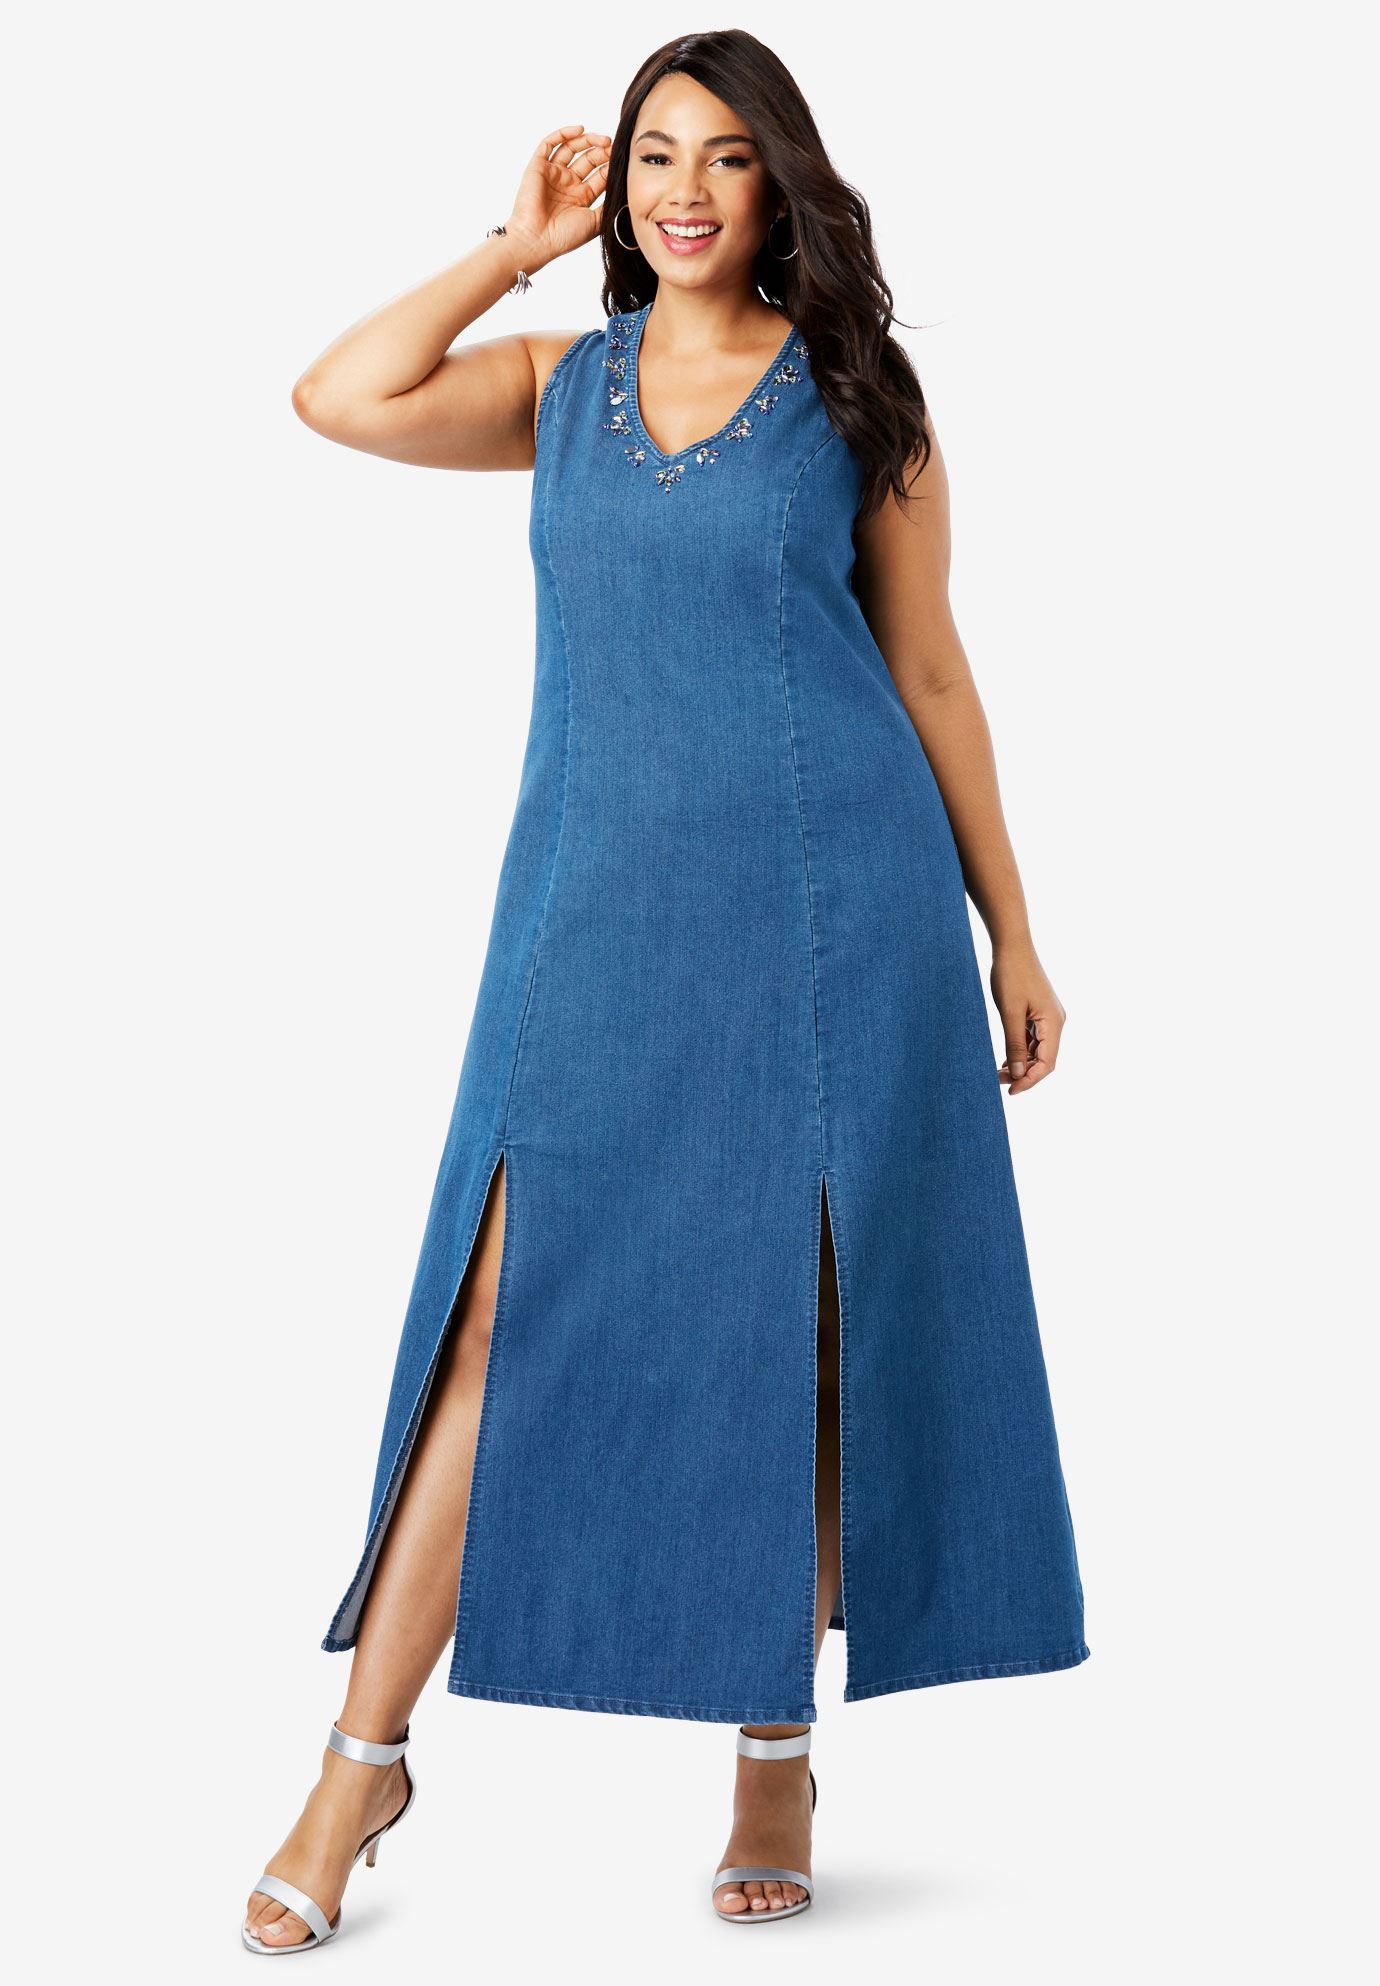 Denim A-Line Maxi Dress | Plus Size Maxi Dresses | Full Beauty